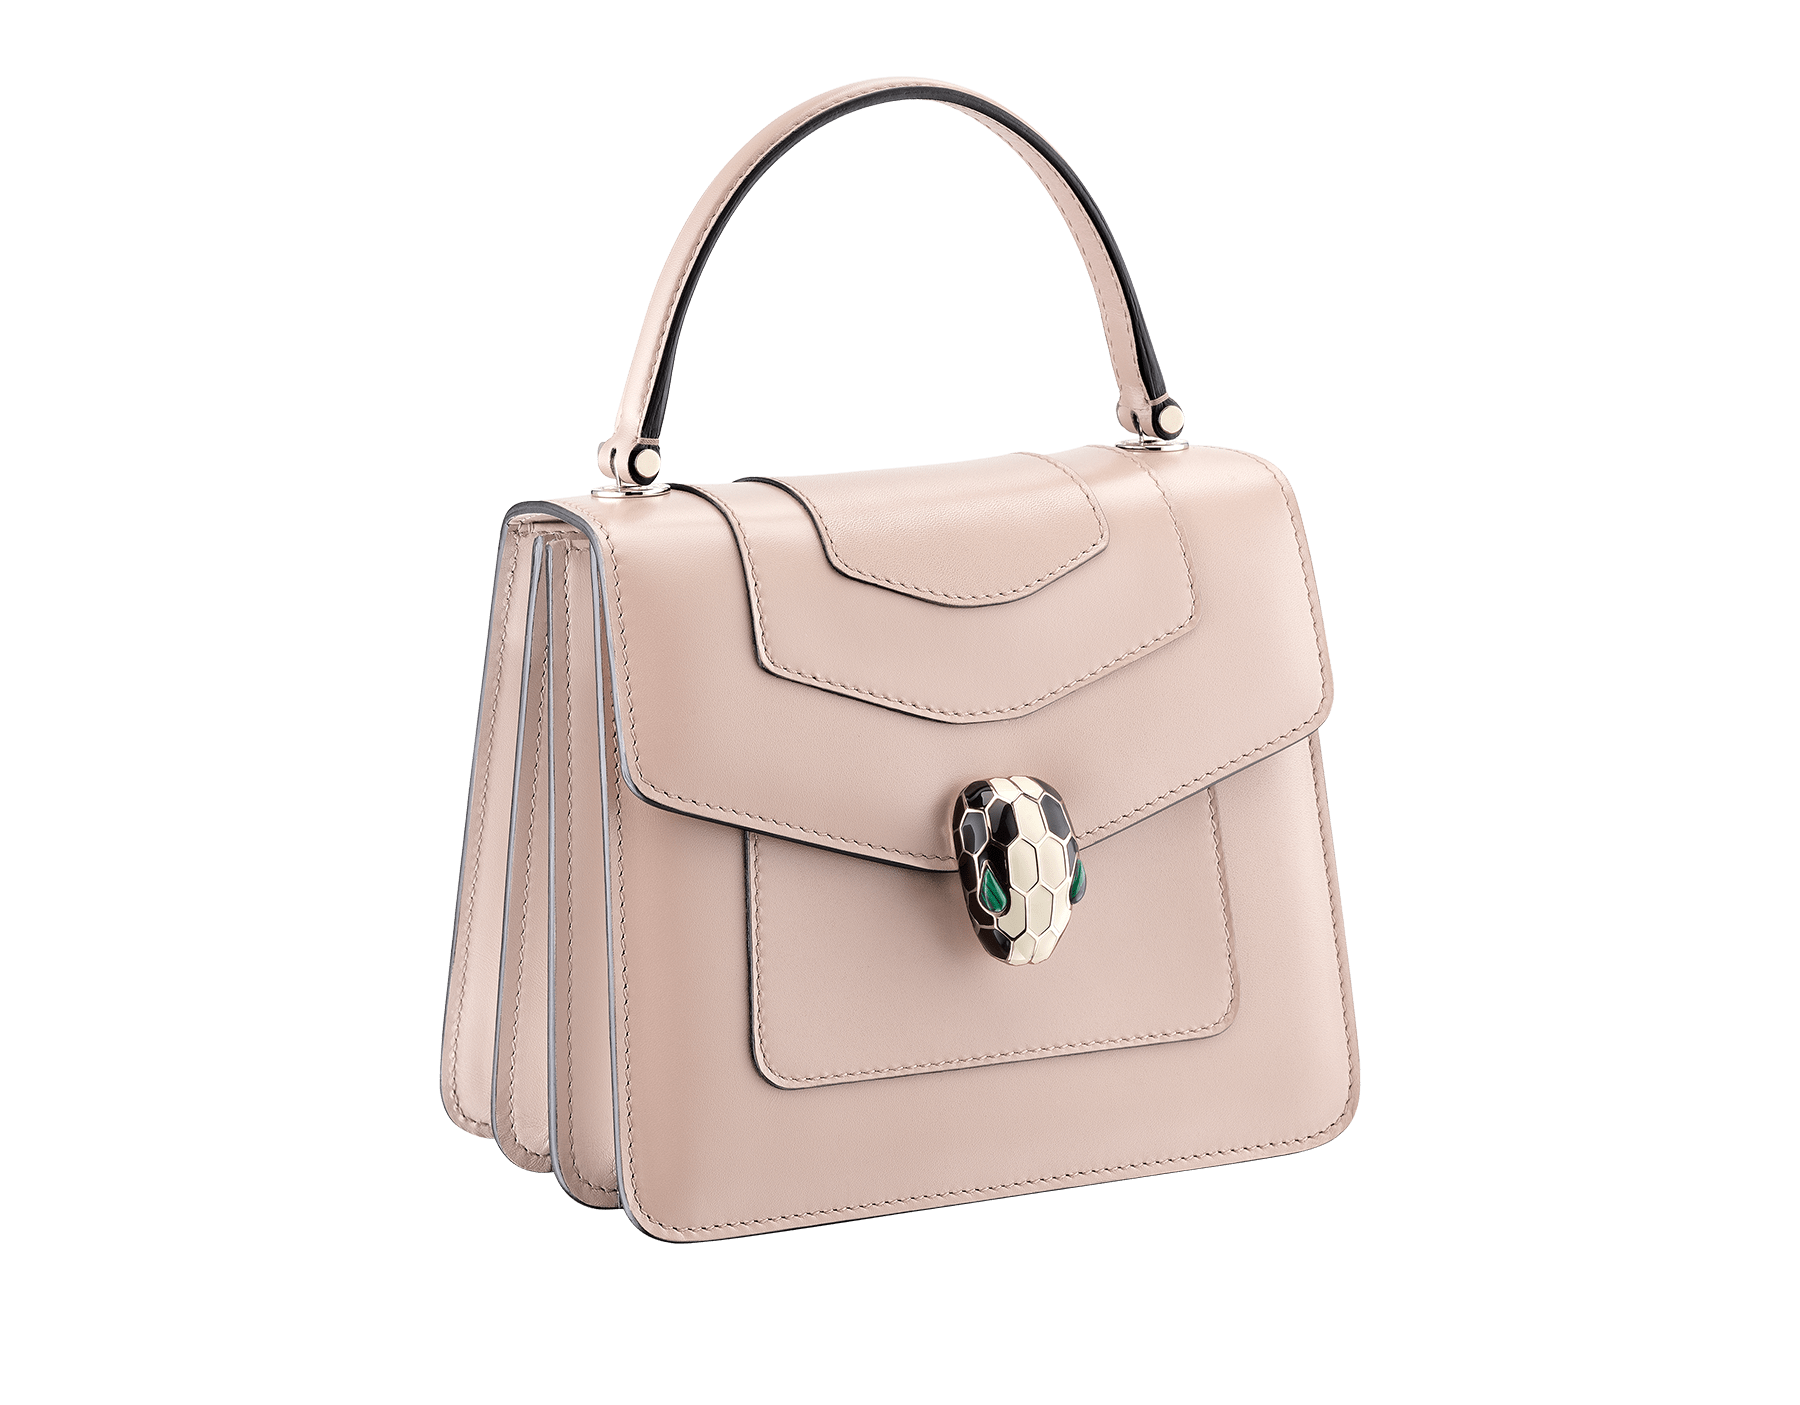 """Serpenti Forever"" crossbody bag in crystal rose calf leather. Iconic snakehead closure in light gold plated brass enriched with black and white enamel and green malachite eyes 287030 image 2"